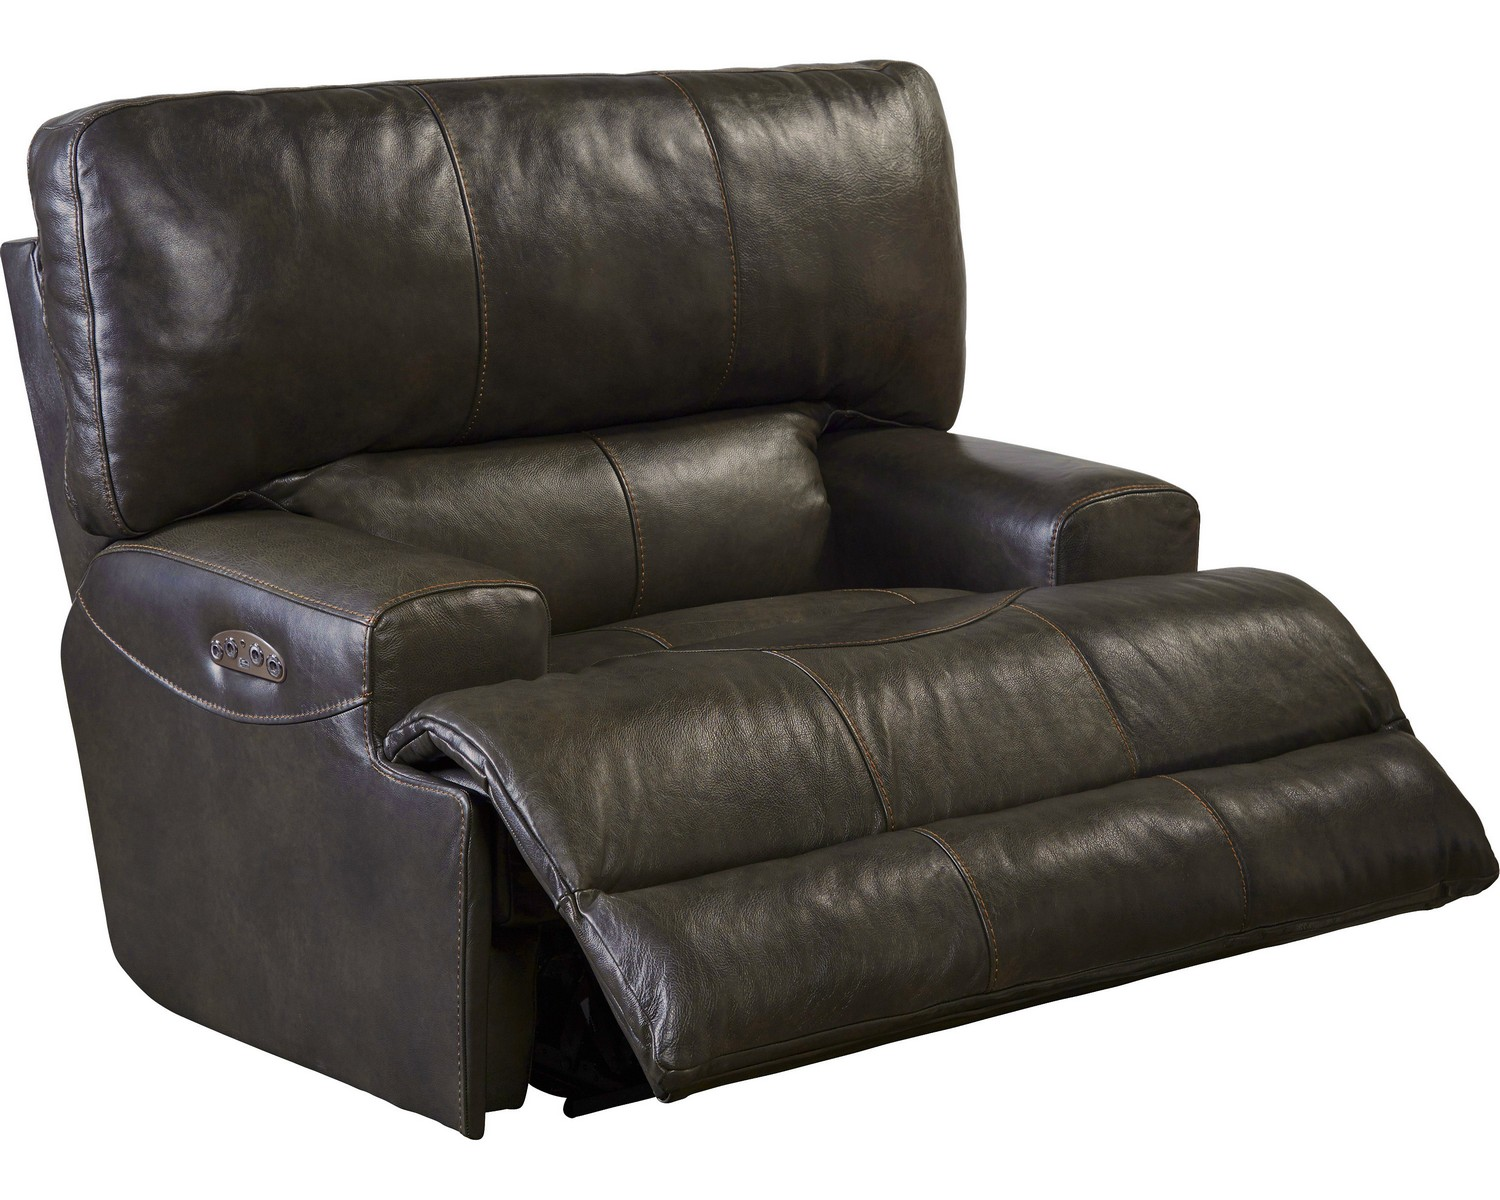 CatNapper Wembley Top Grain Italian Leather Leather Power Headrest Power Lay Flat Recliner - Chocolate